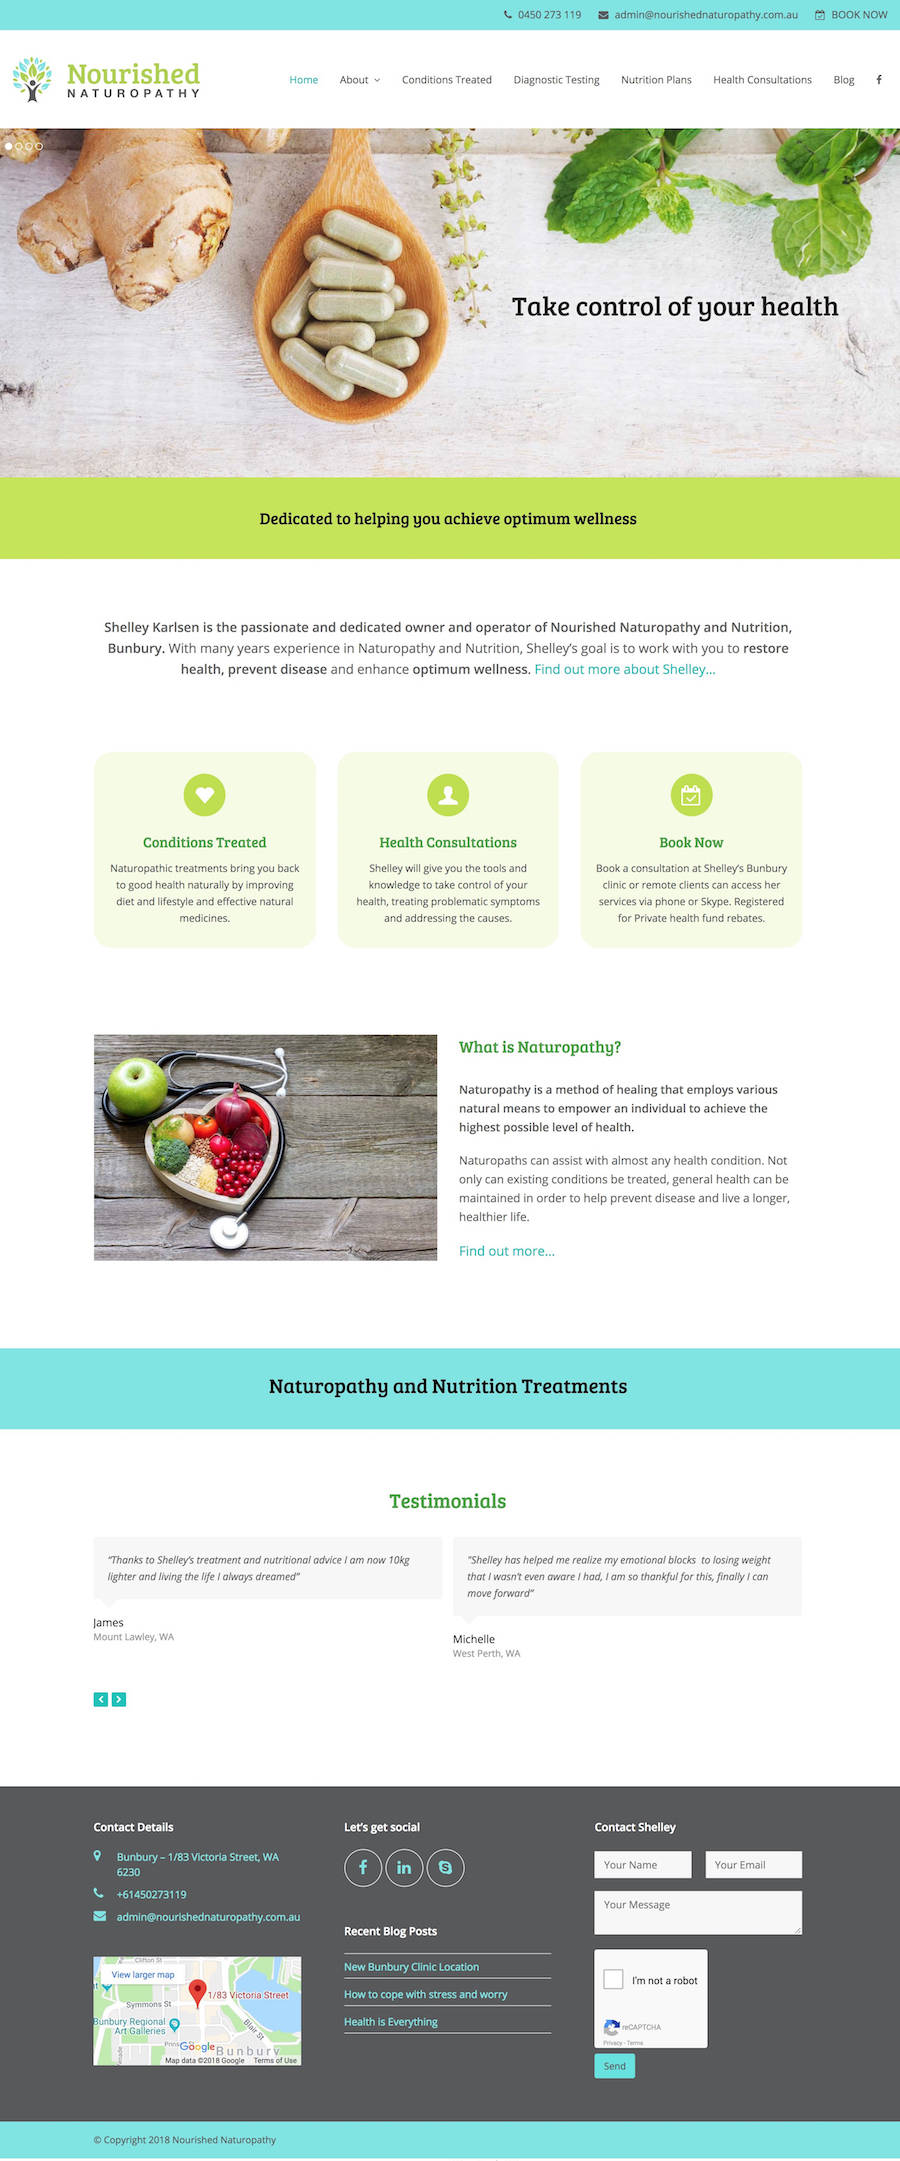 Nourished Naturopathy Website Design